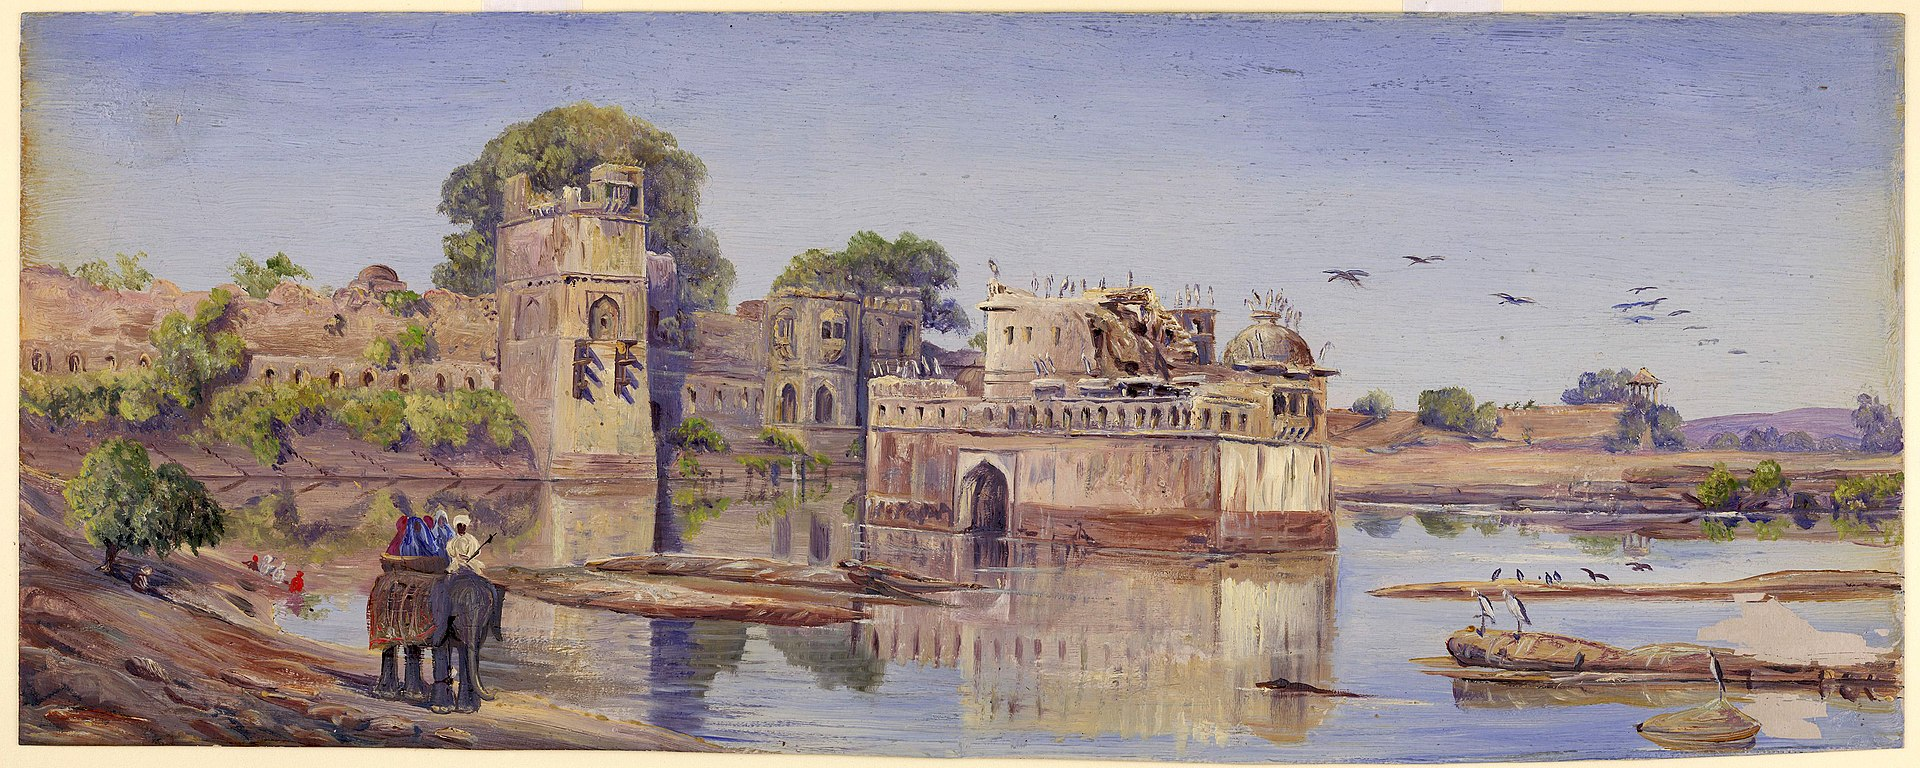 https://upload.wikimedia.org/wikipedia/commons/thumb/c/c7/Oil_painting_of_Padmini%27s_palace_in_the_fort_in_the_midst_of_the_tank.jpg/1920px-Oil_painting_of_Padmini%27s_palace_in_the_fort_in_the_midst_of_the_tank.jpg